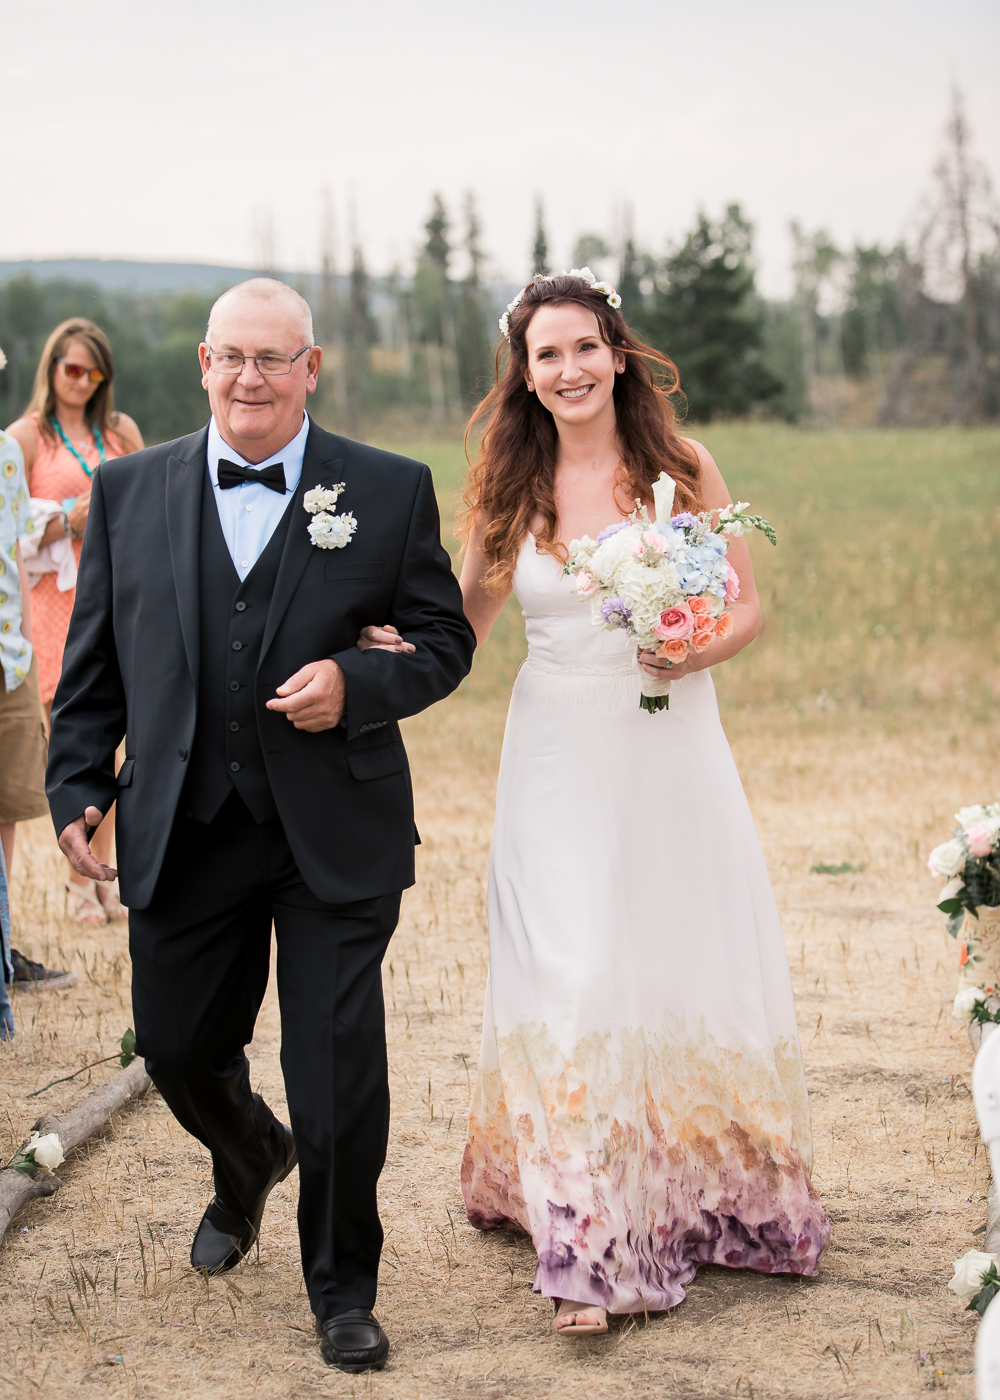 Outdoor Colorado Wedding by Wyoming based Photographer, Megan Lee Photography